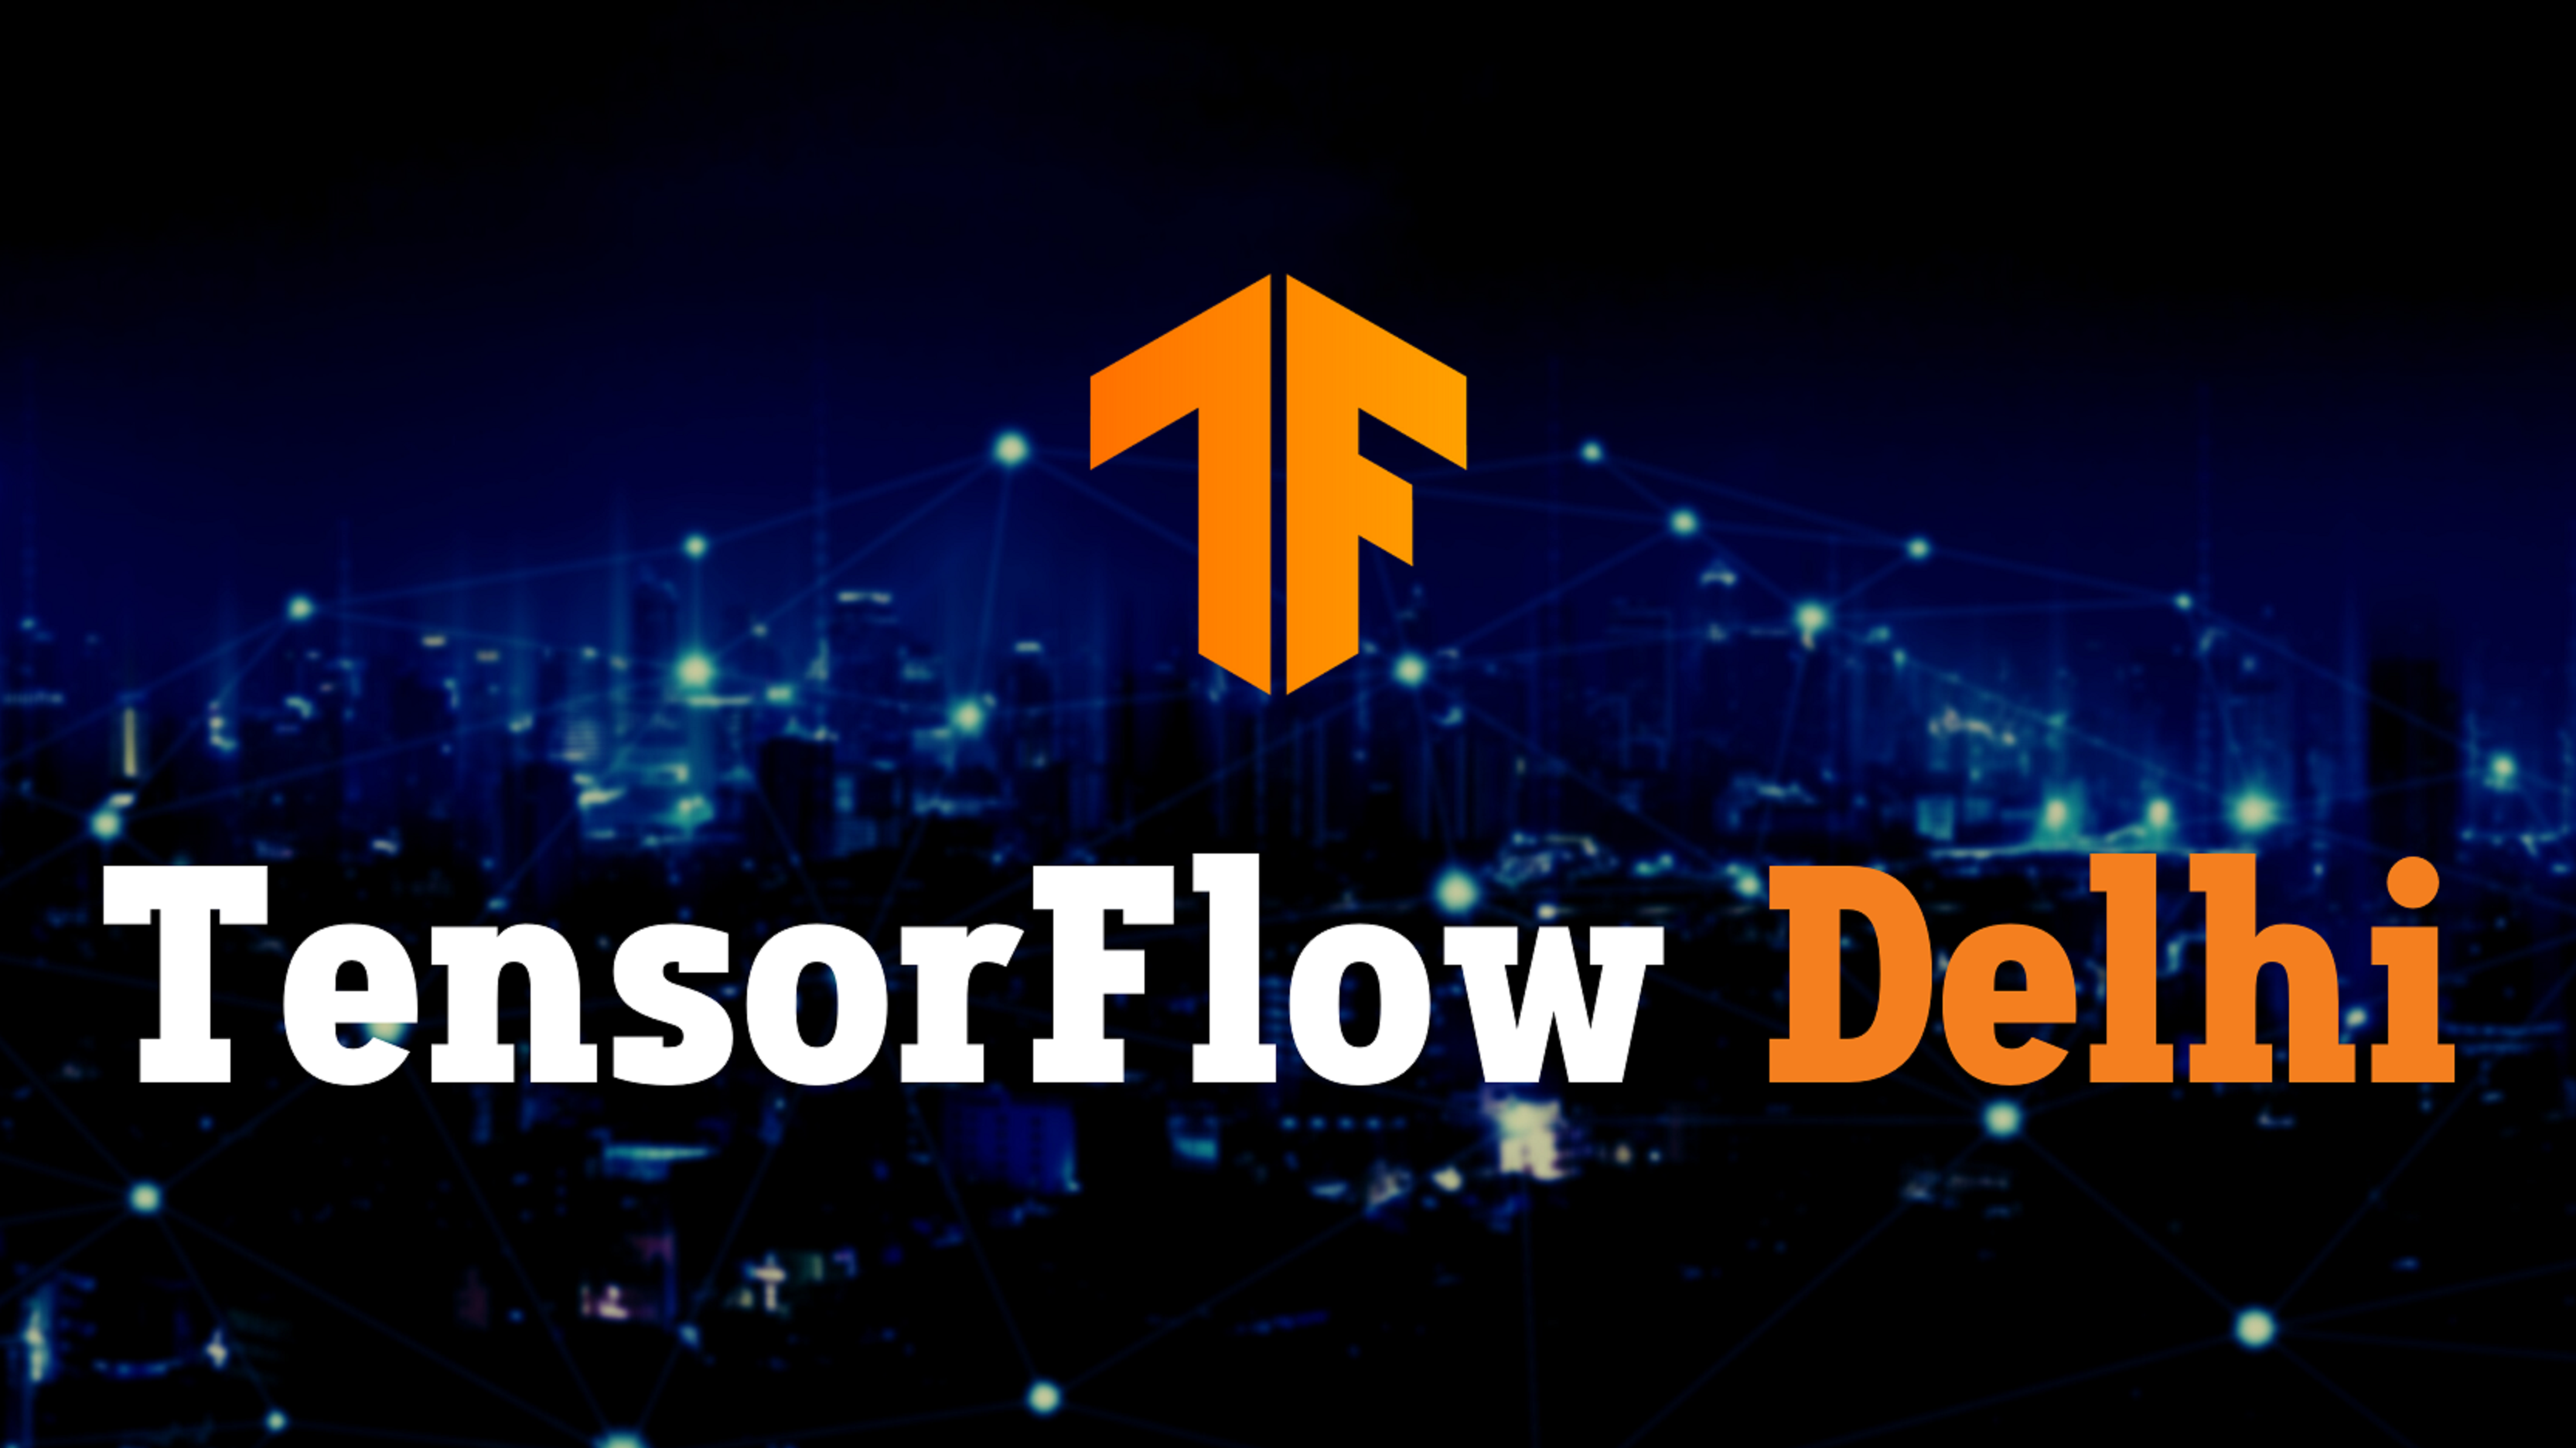 Tensorflow User Group Delhi